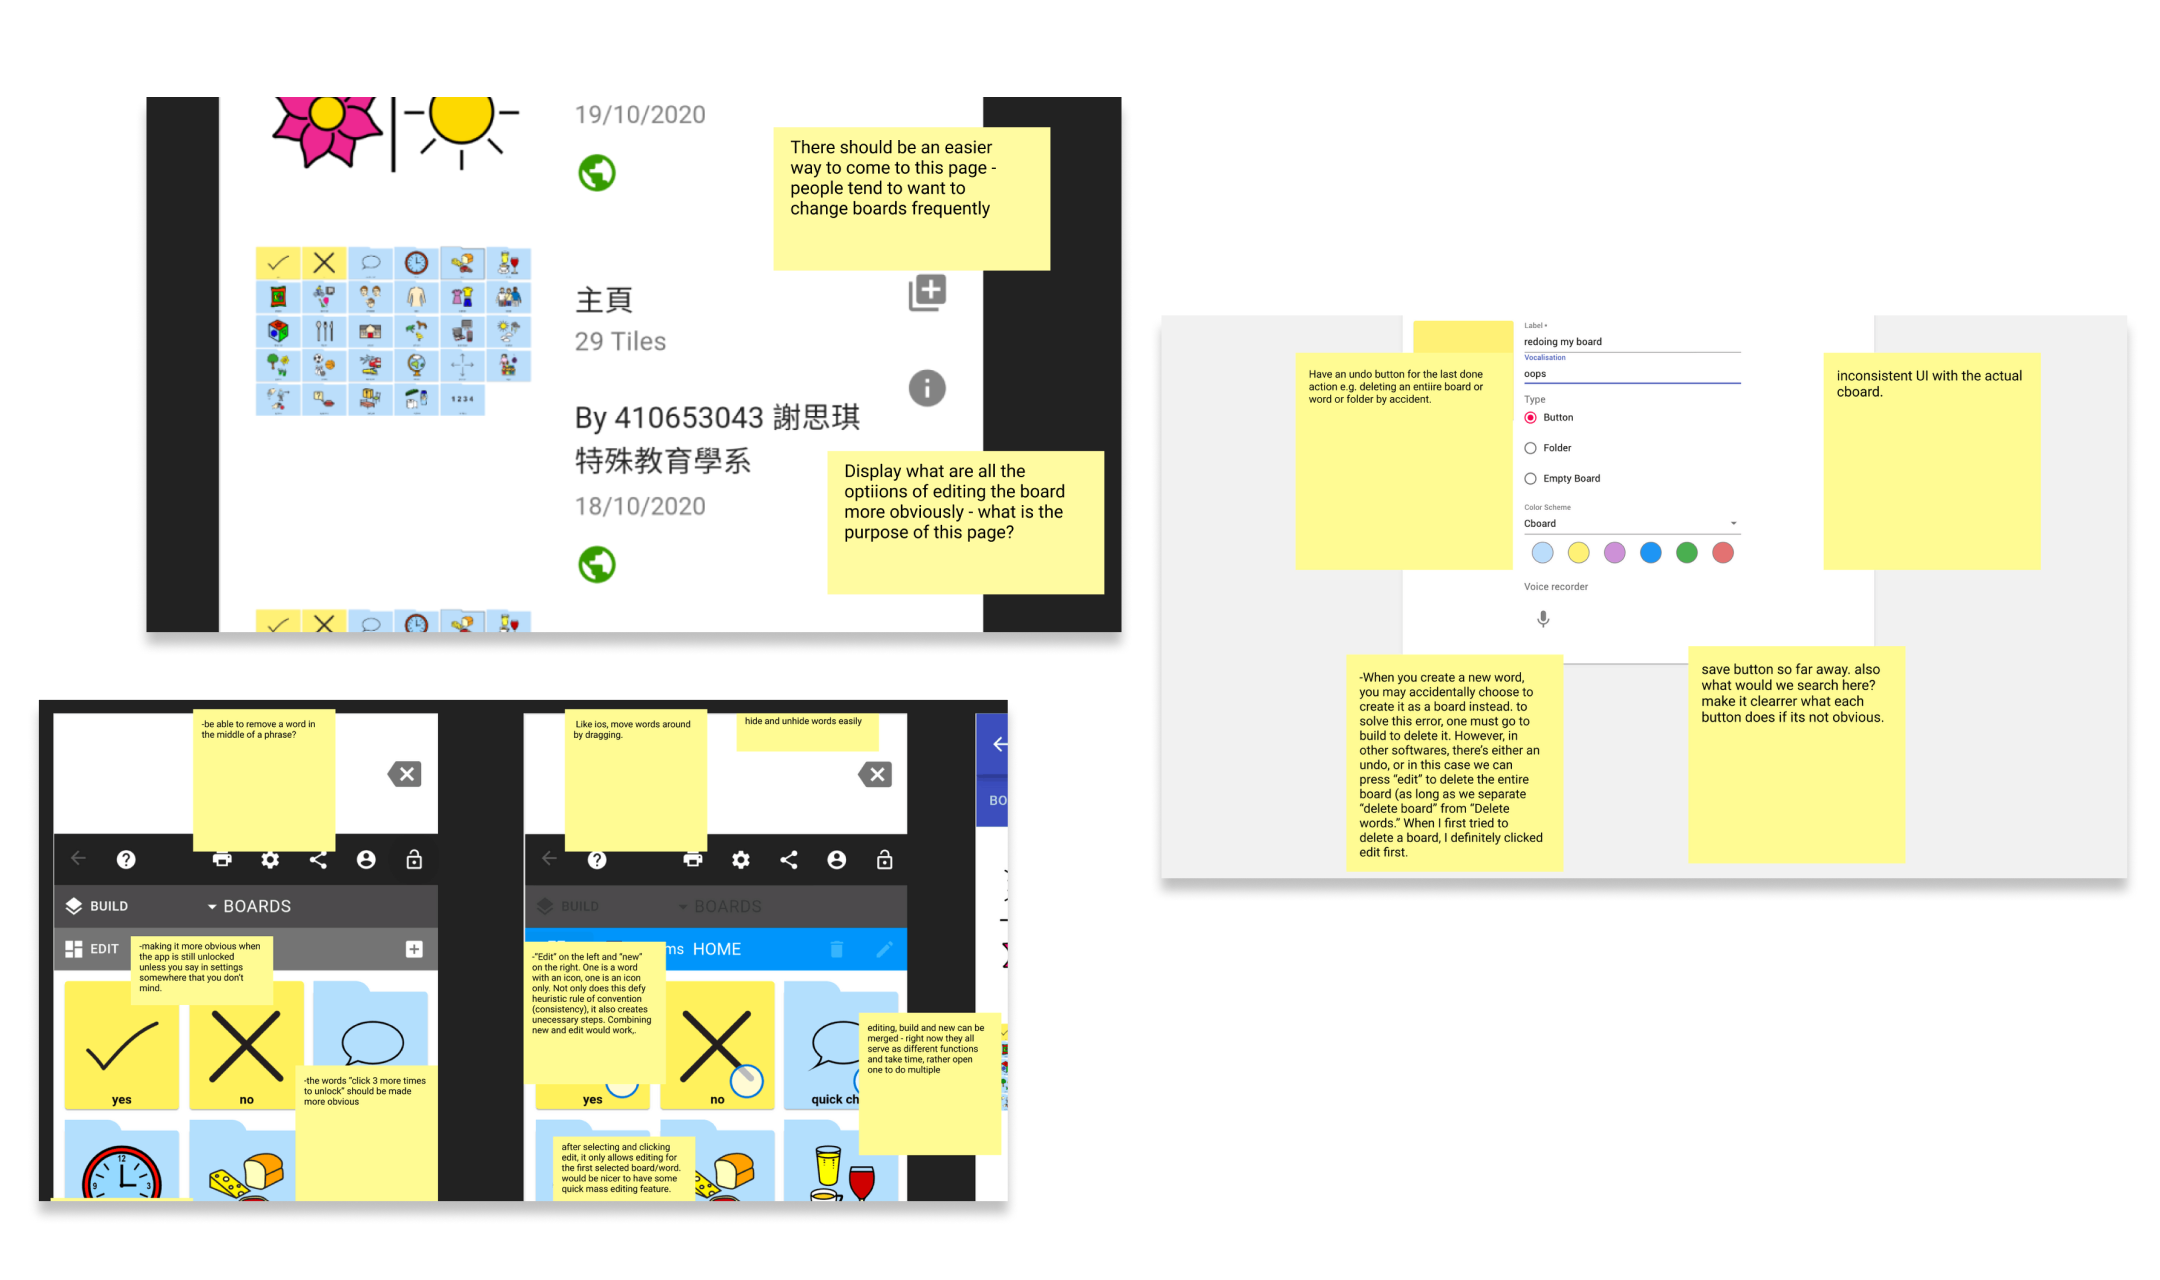 Some screenshots of feedback from users regarding CBoard's customization and edit mode into sticky notes.